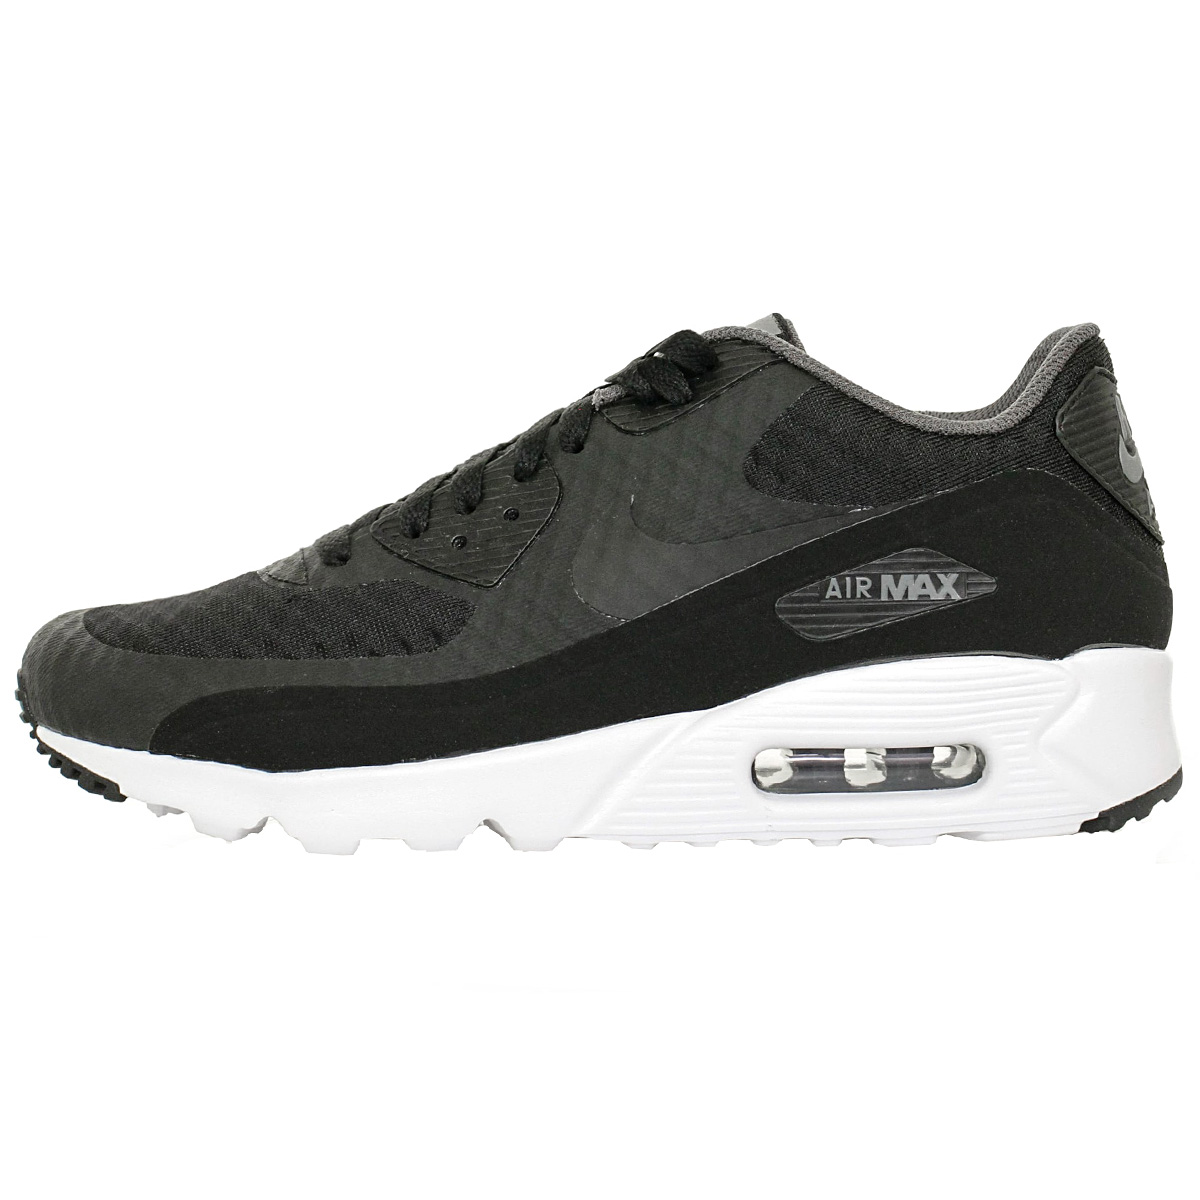 on sale 6b290 c5b4e ... Nike Air Max 90 Ultra Essential 819474-013 Shoes Trainers NEW ...